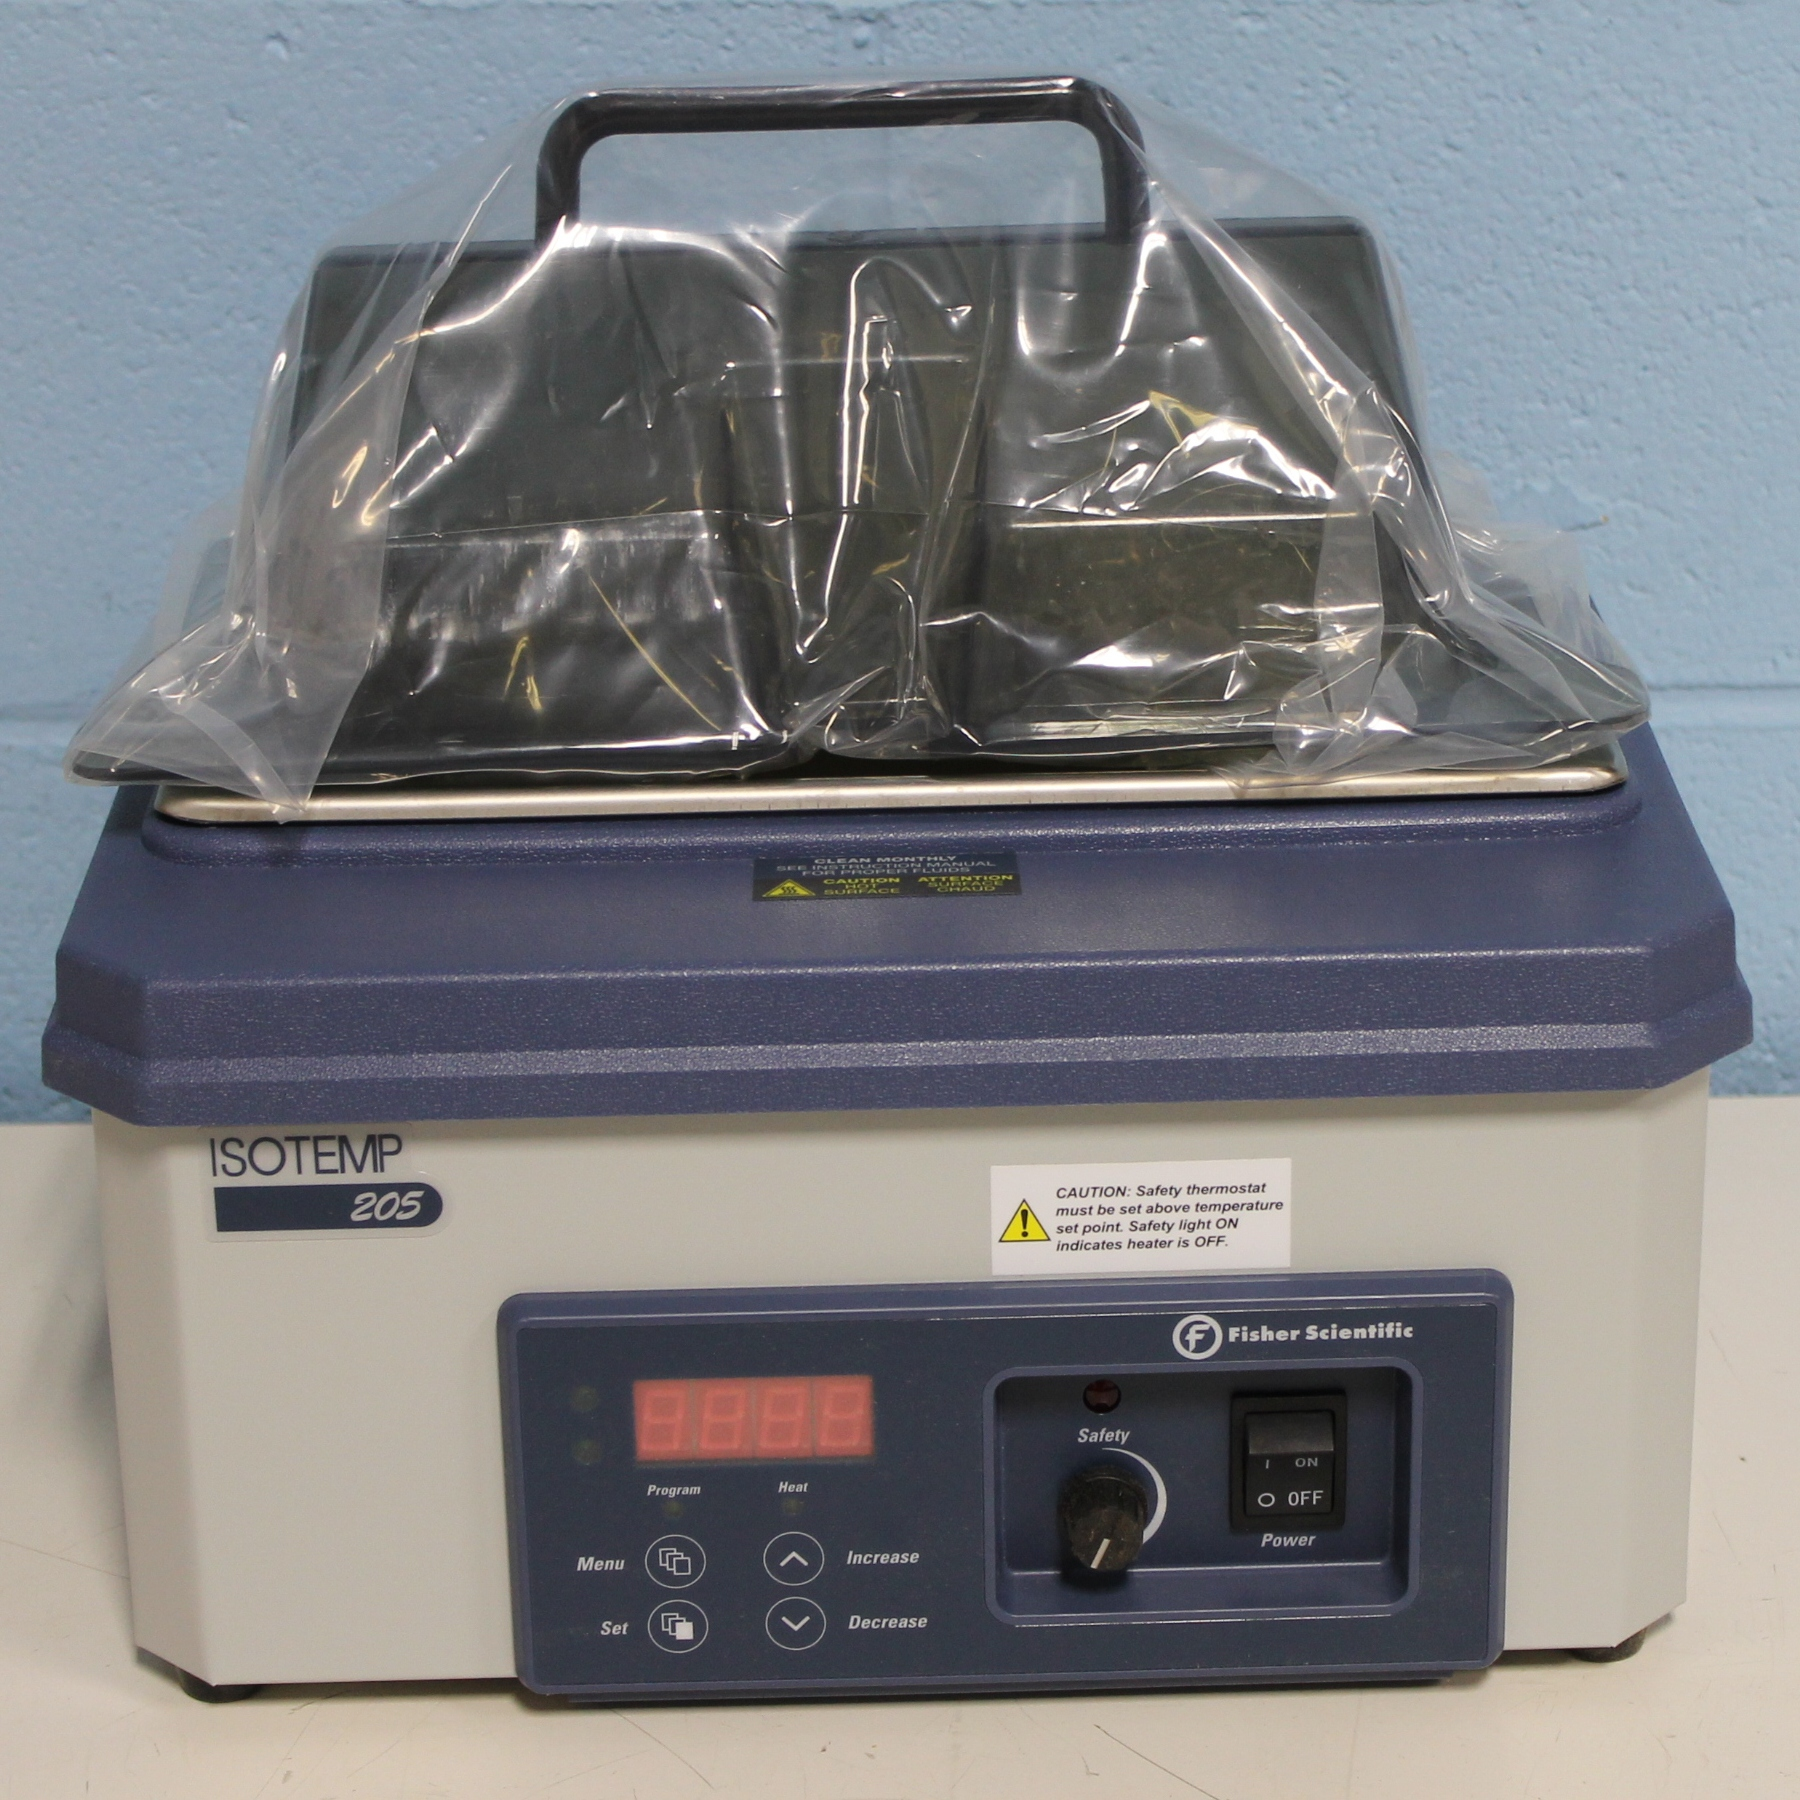 Fisher Scientific Isotemp 205 Digital-Control Water Bath Image